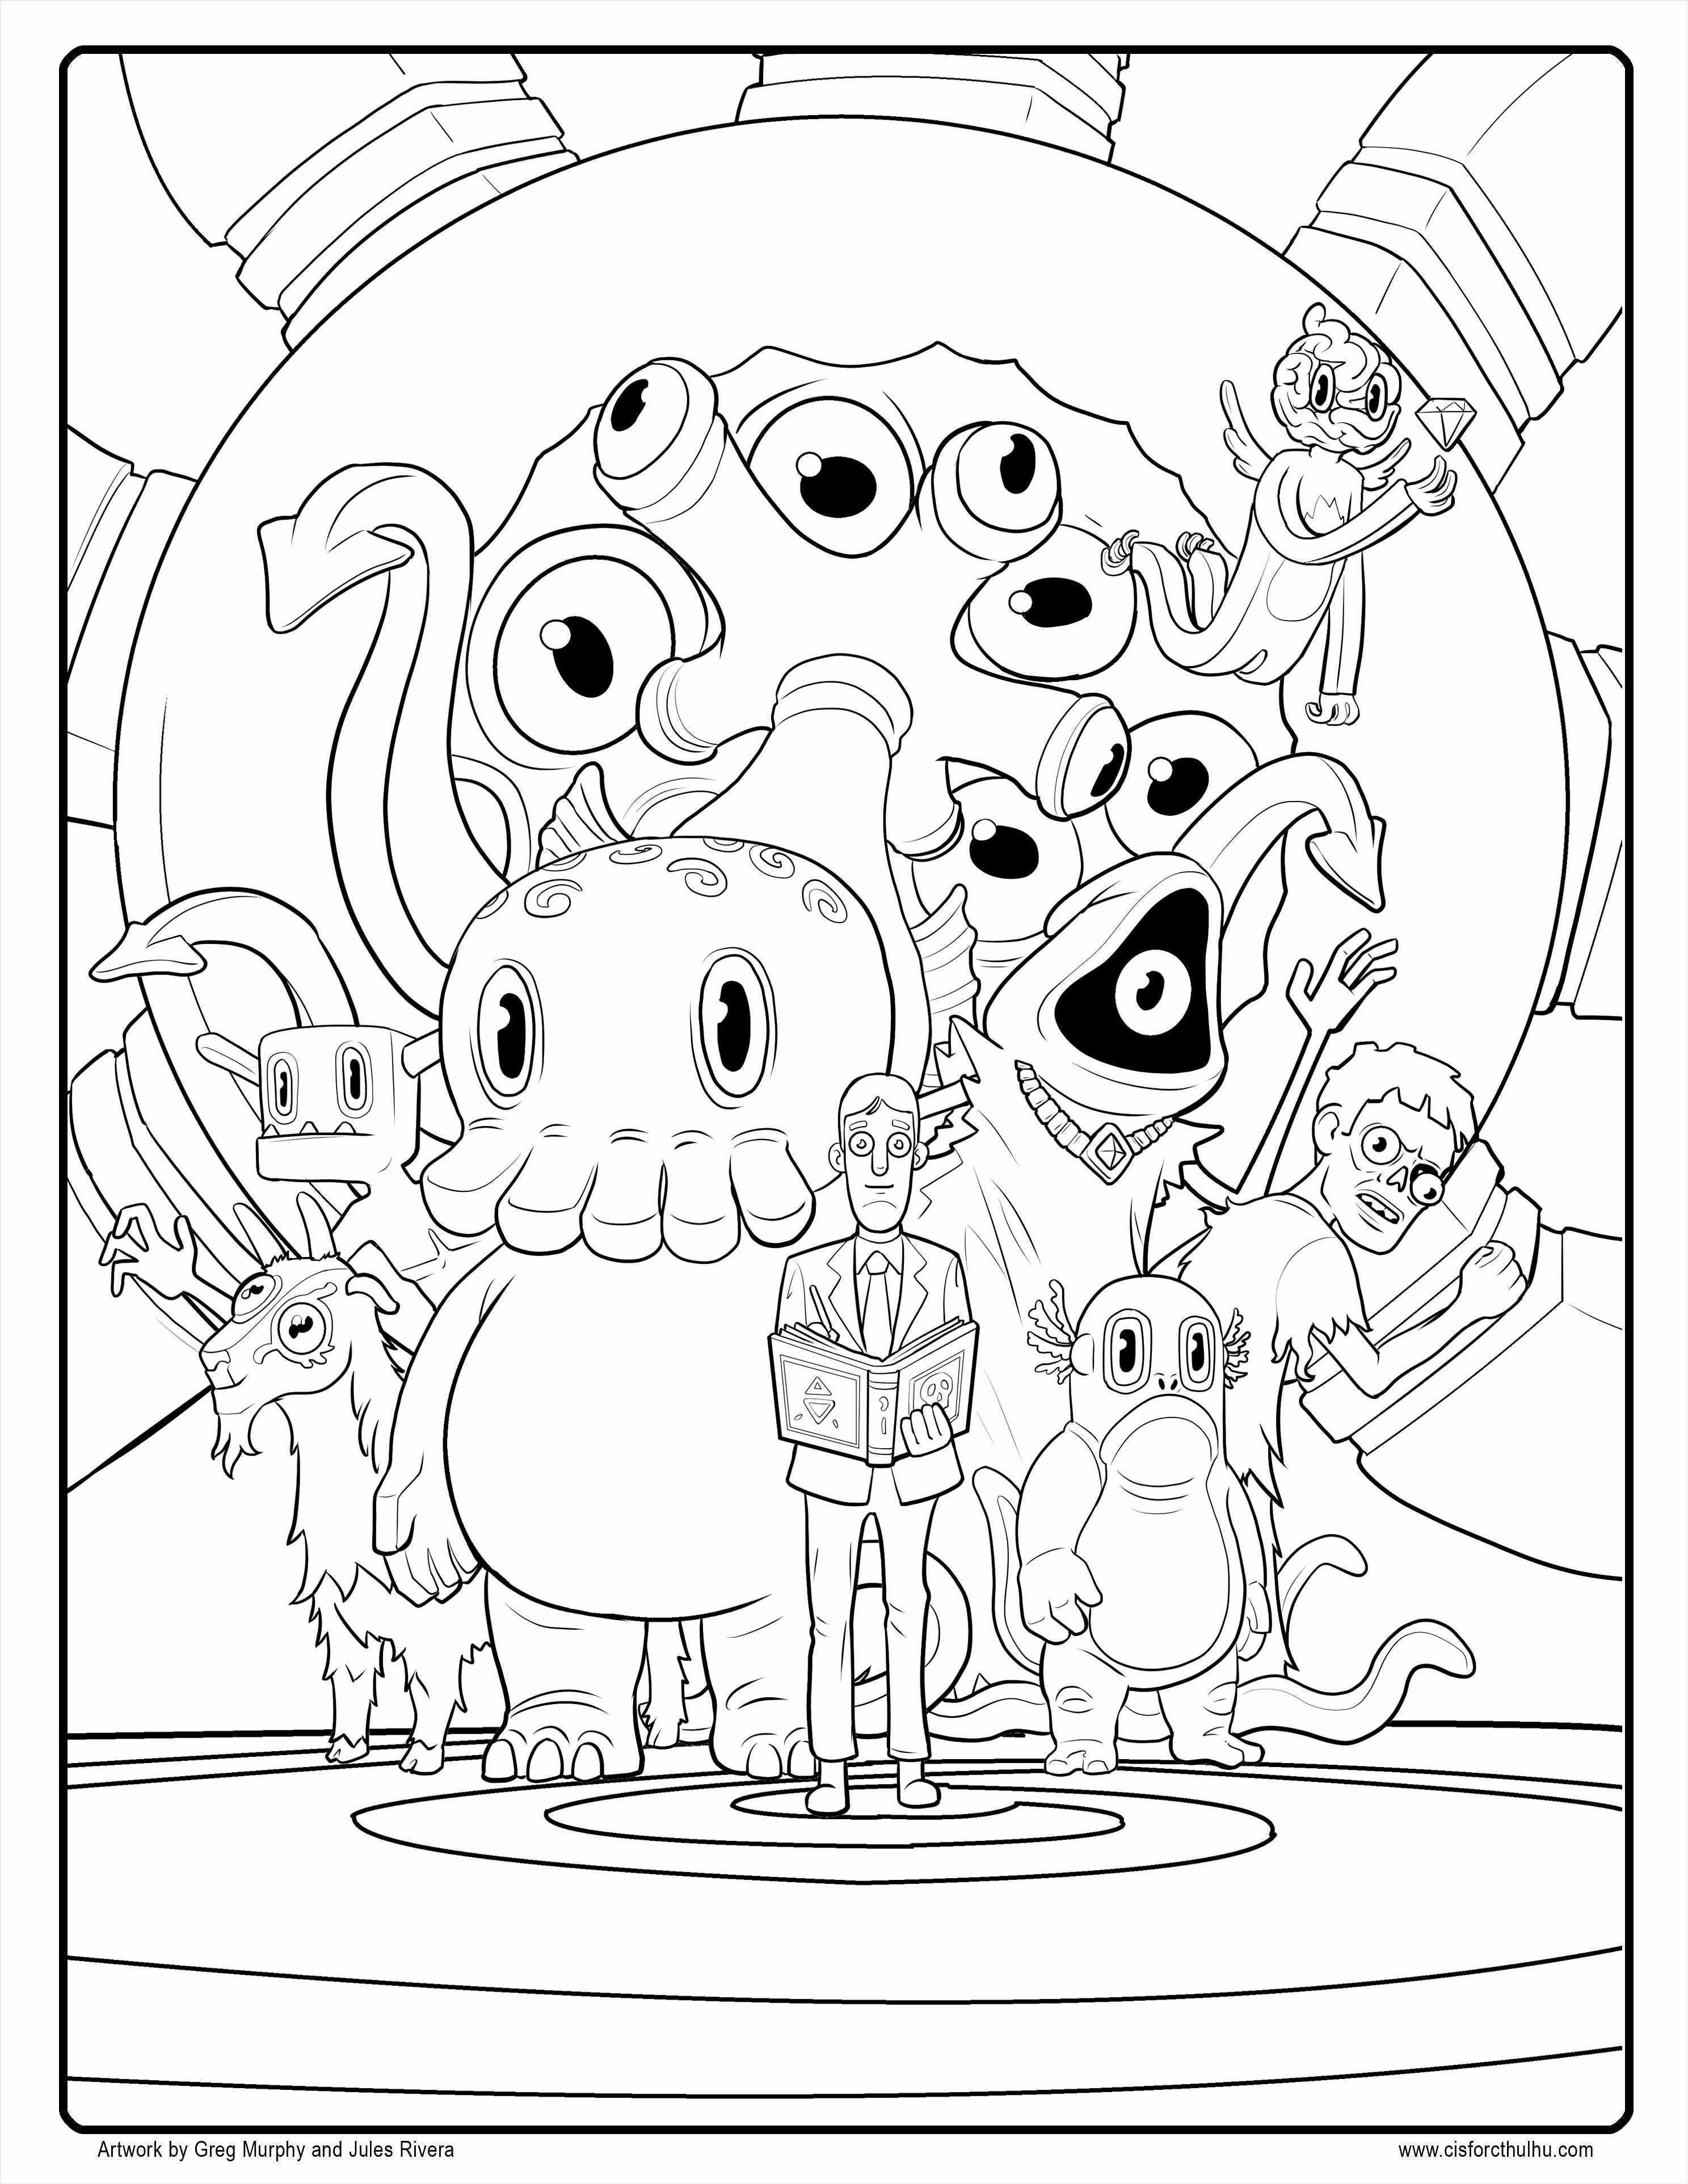 Coloring Pages Dogs Coloring Pic Lovely Coloring Pages Dogs New